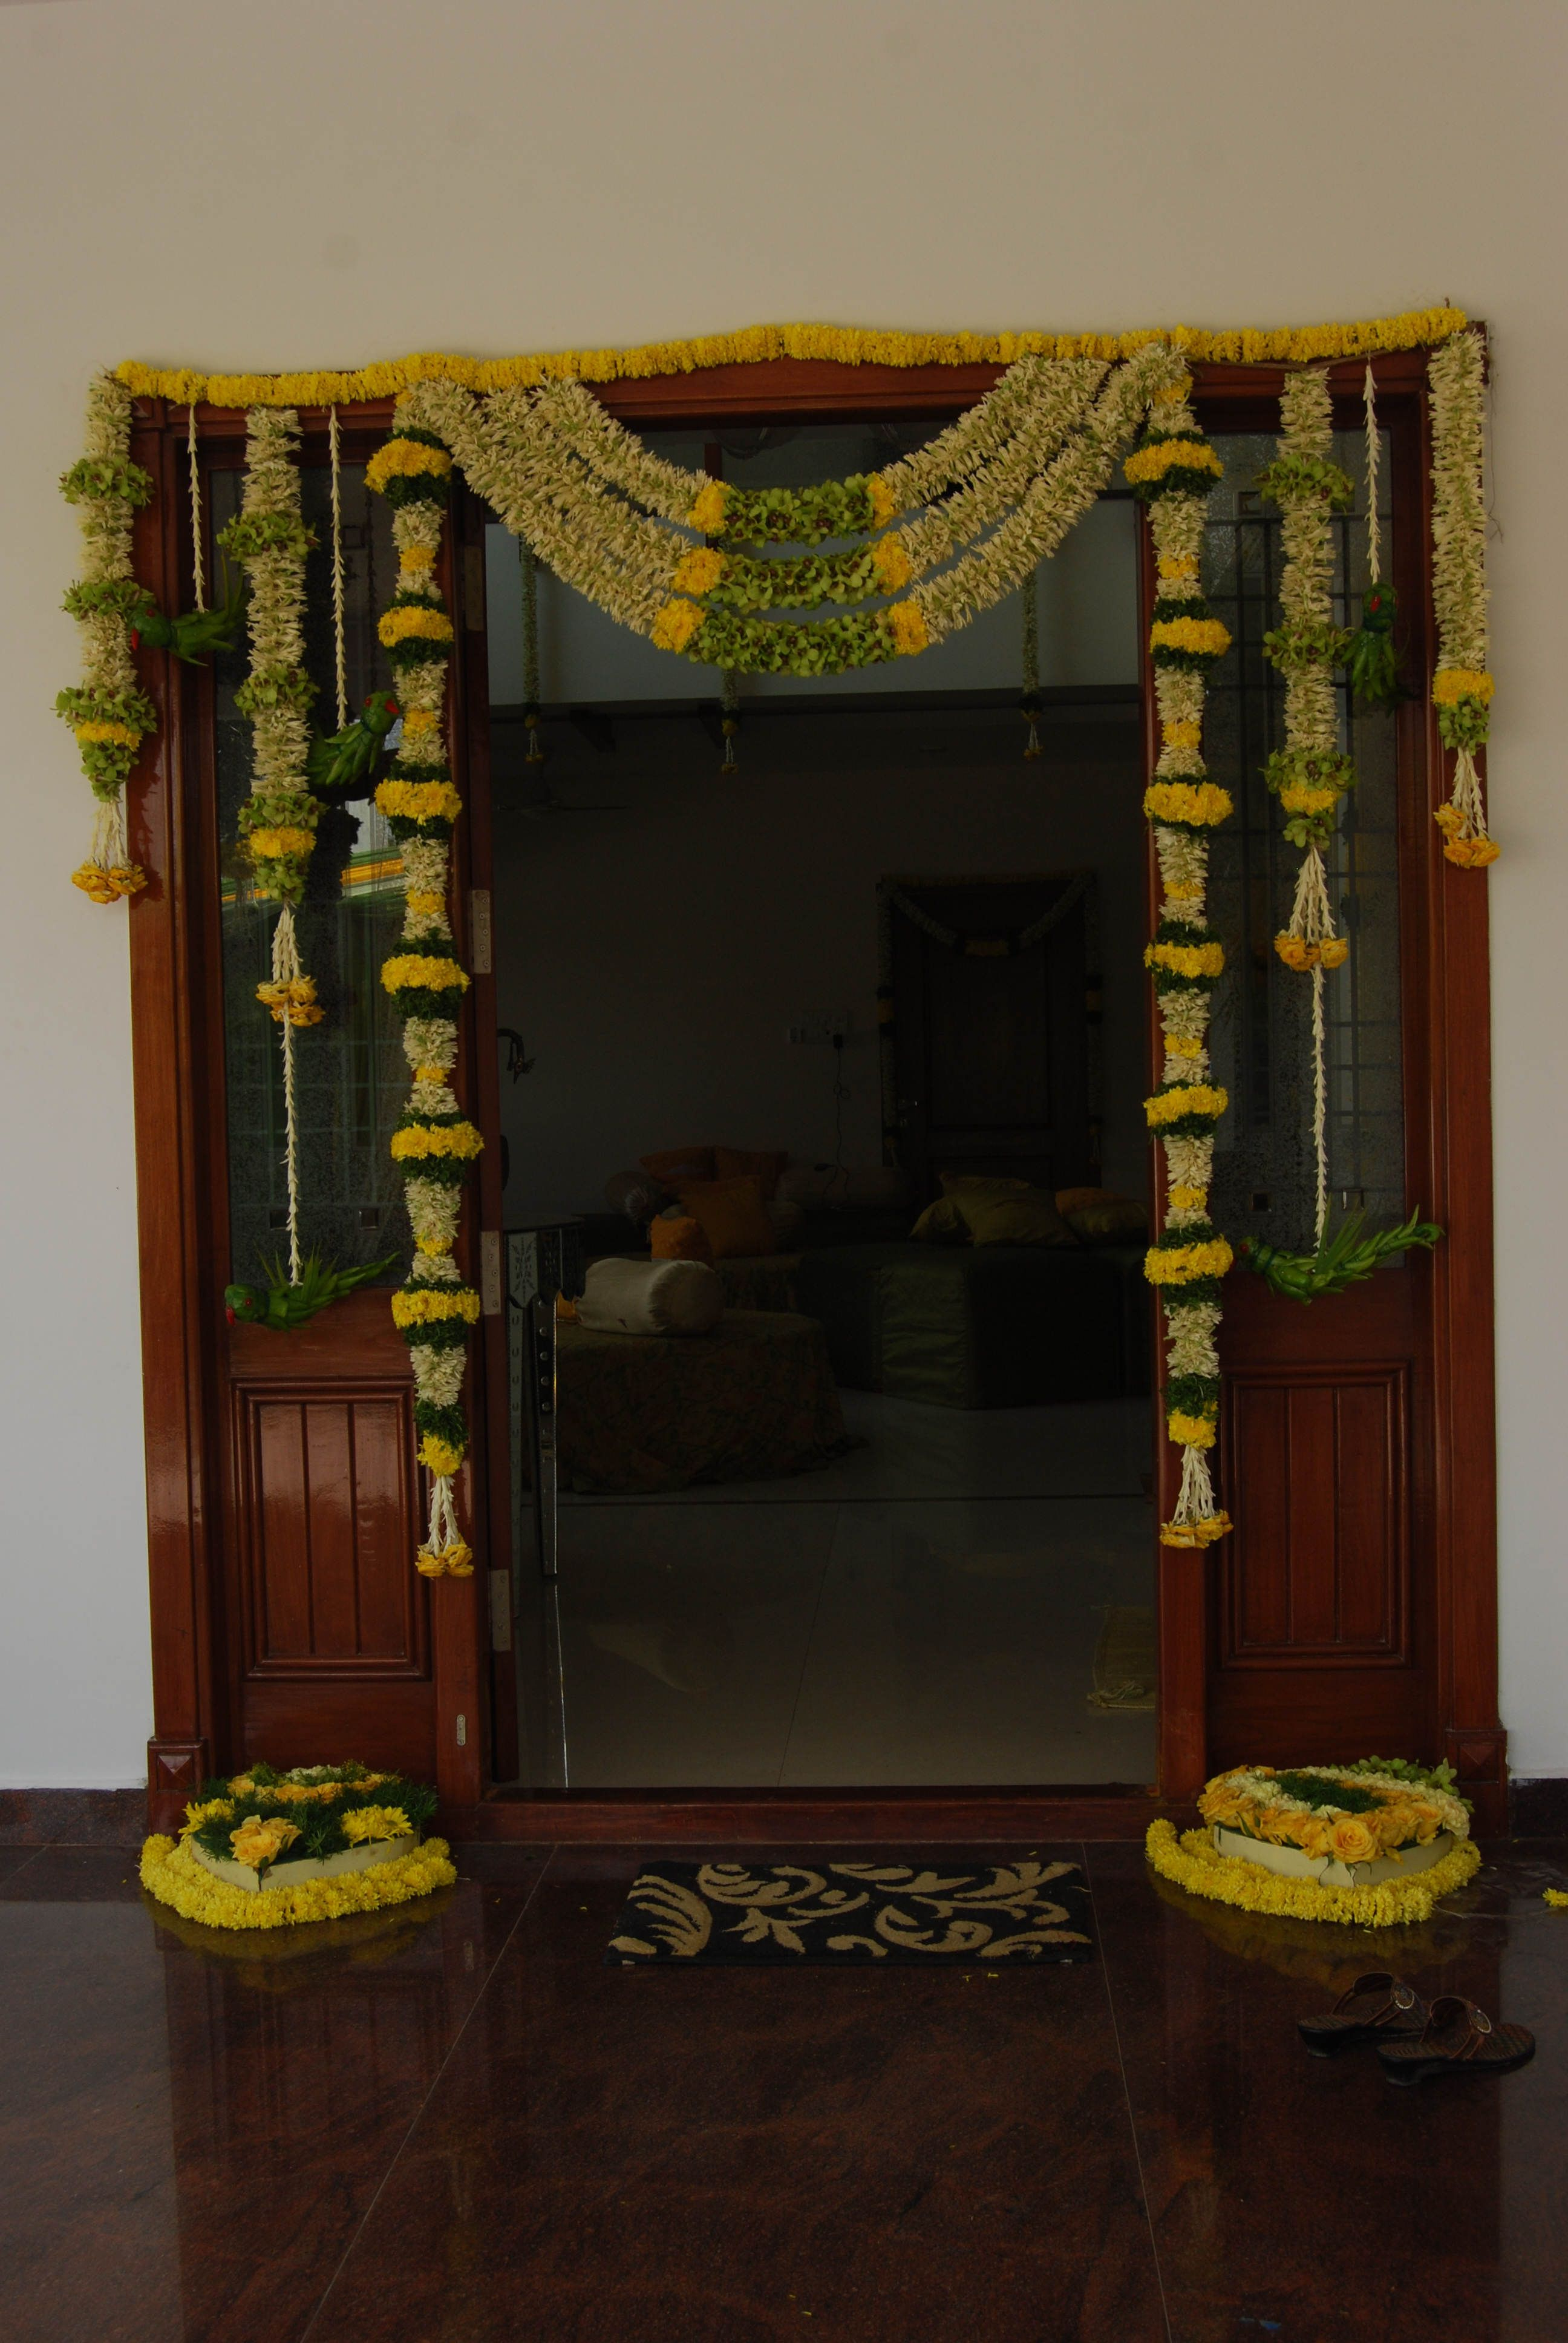 Fashionable Floral Patterned Over The Door Wall Decor With Regard To Door Framedflowers And Green Leaves (View 4 of 20)